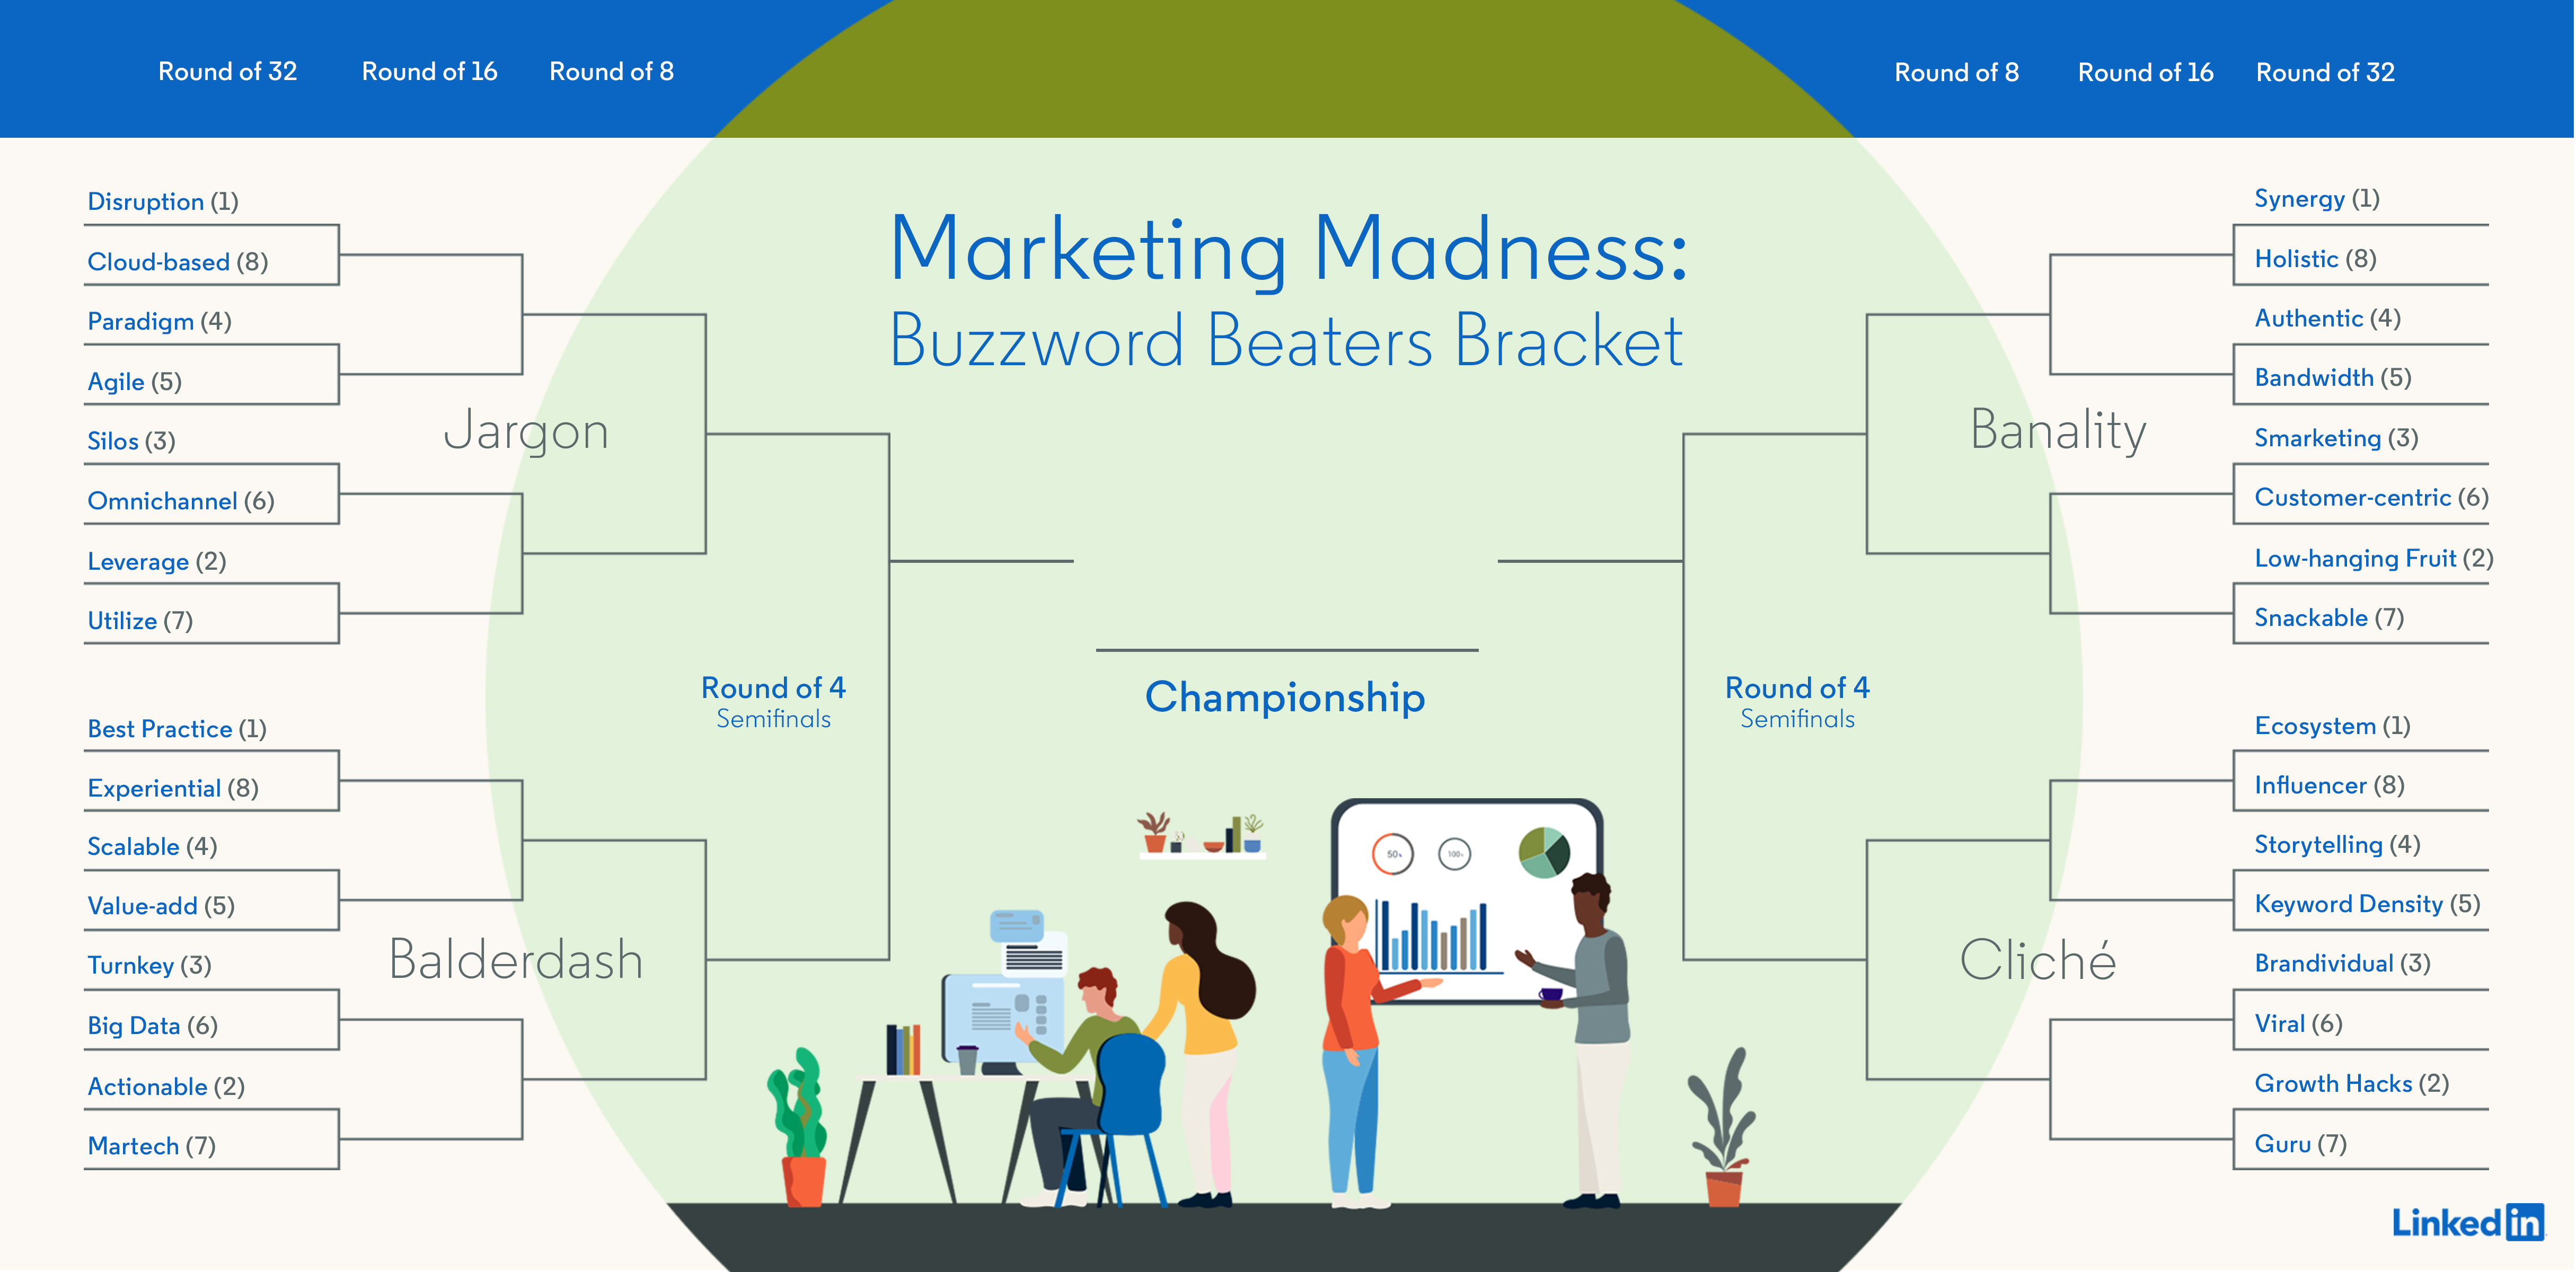 marketing madness bracket  buzzword beaters  u2013 client